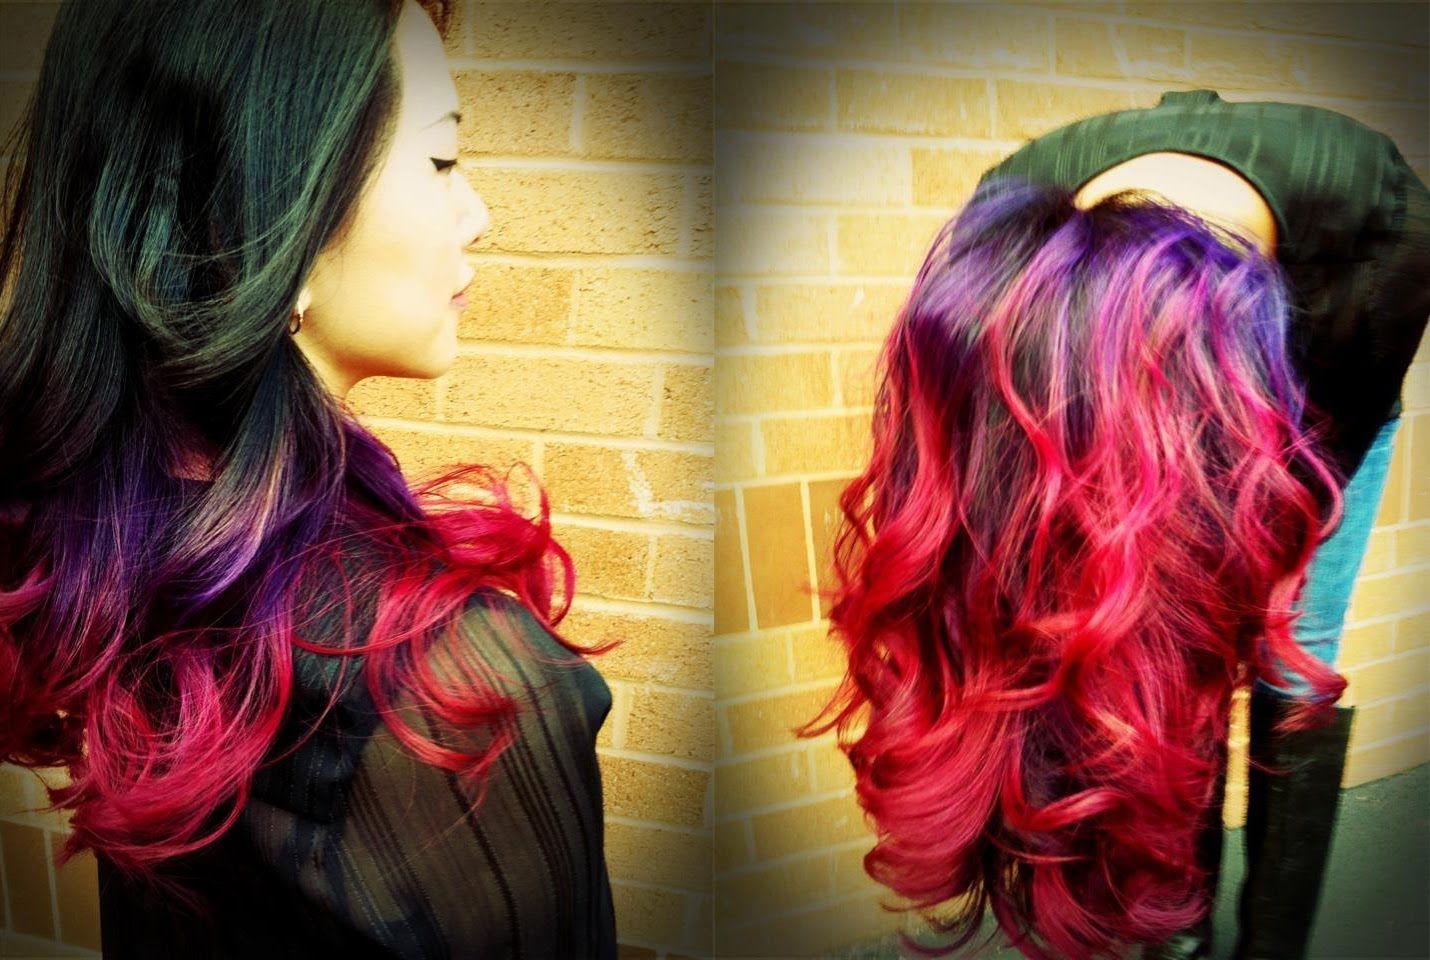 Best ombre tutorial on youtube uu purple to pink ombre done on